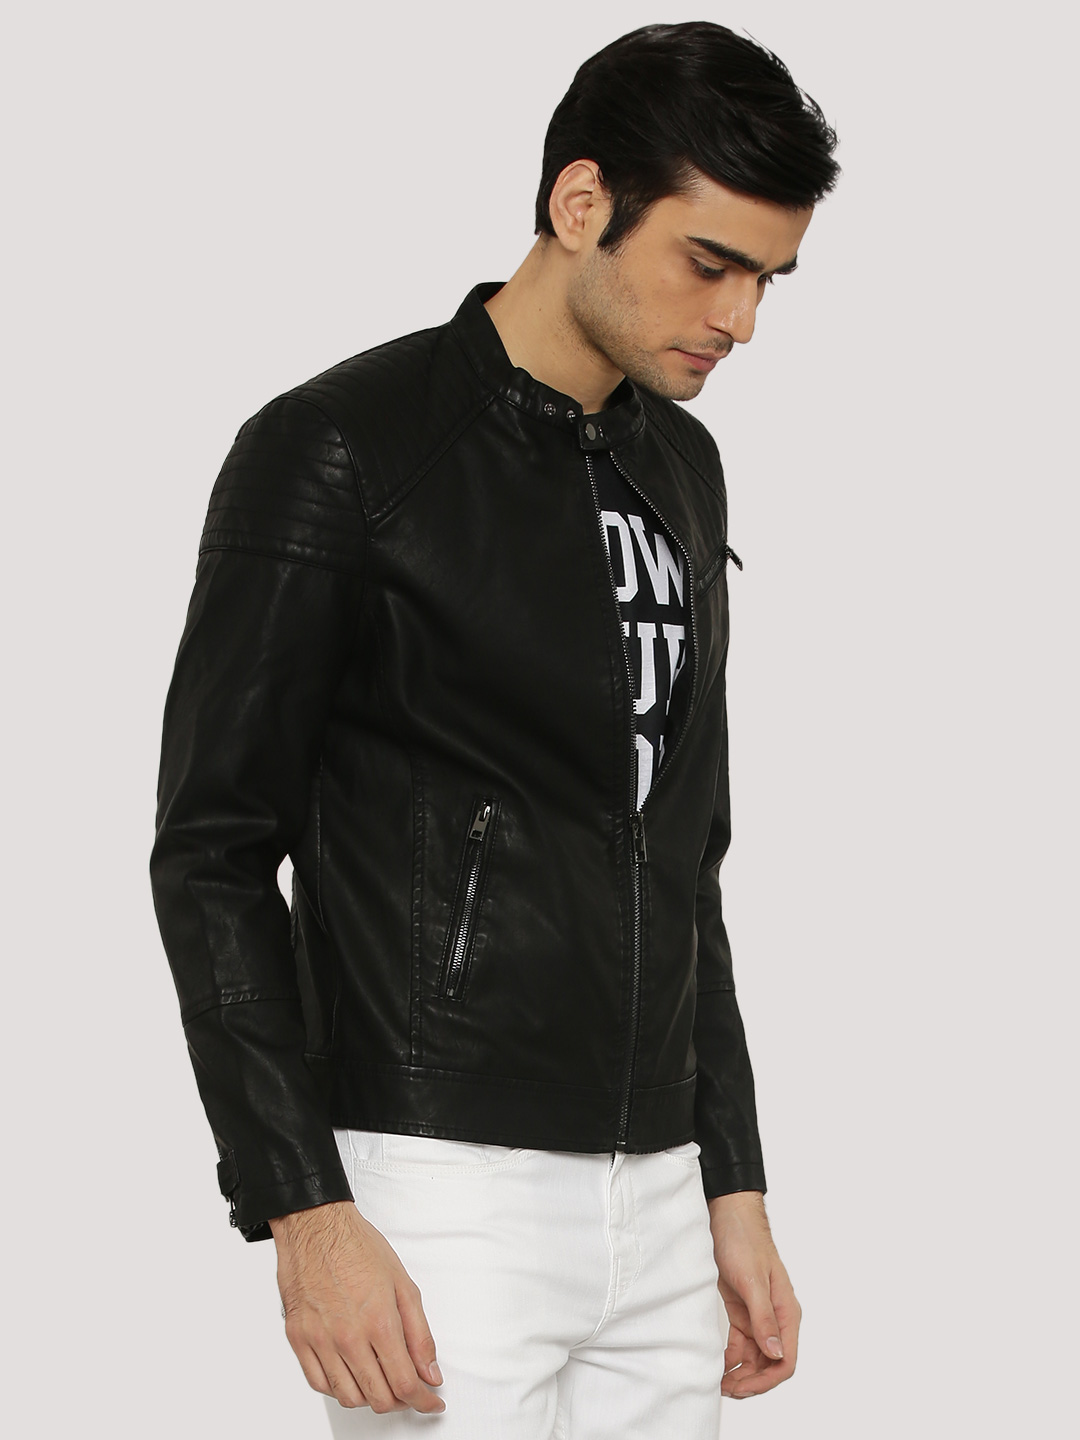 New Look Black PU Biker Jacket With Sleeve Quilting 1